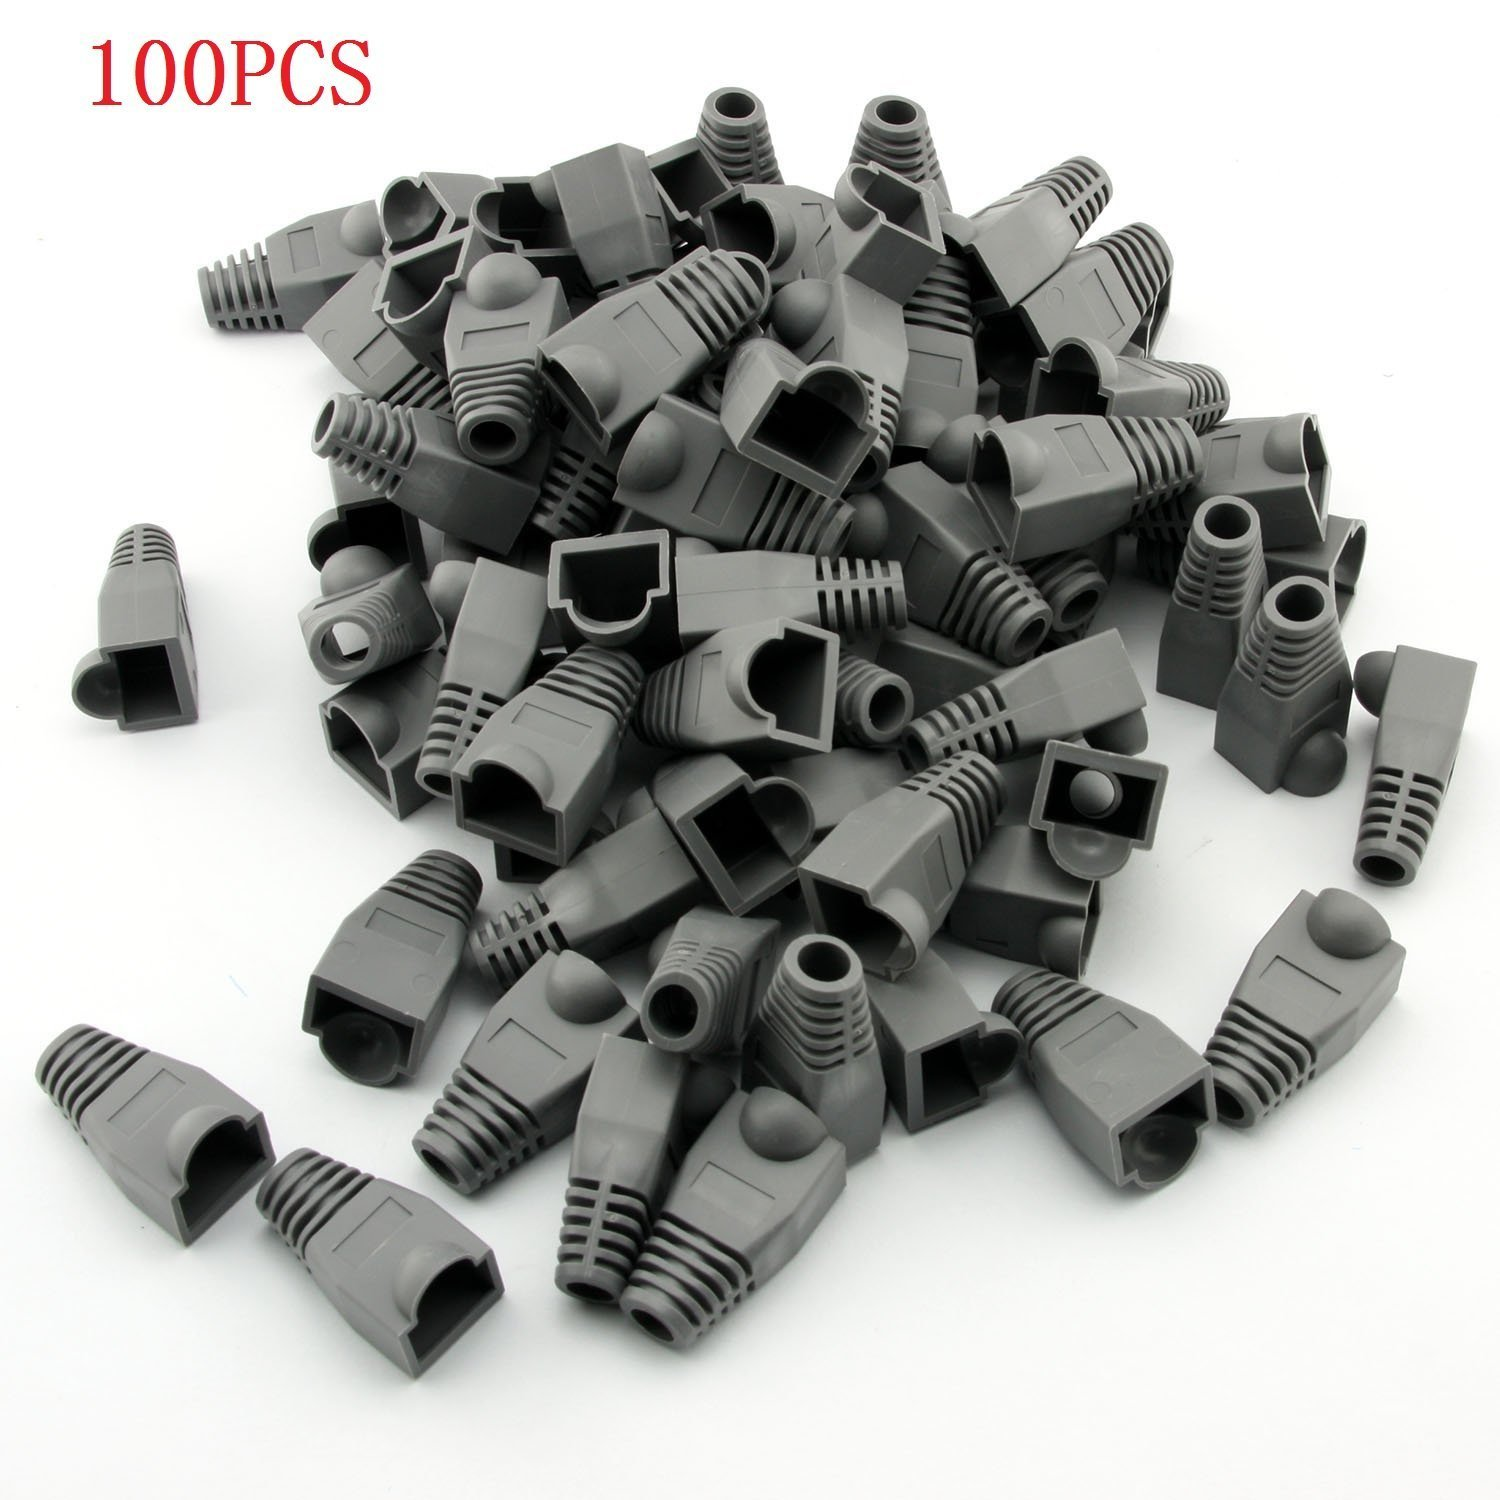 Gfortune 100pcs RJ45 Cat6 Cat5E Ethernet Cable Snagless End Boots Cap Connector Cover Modular (Gray)